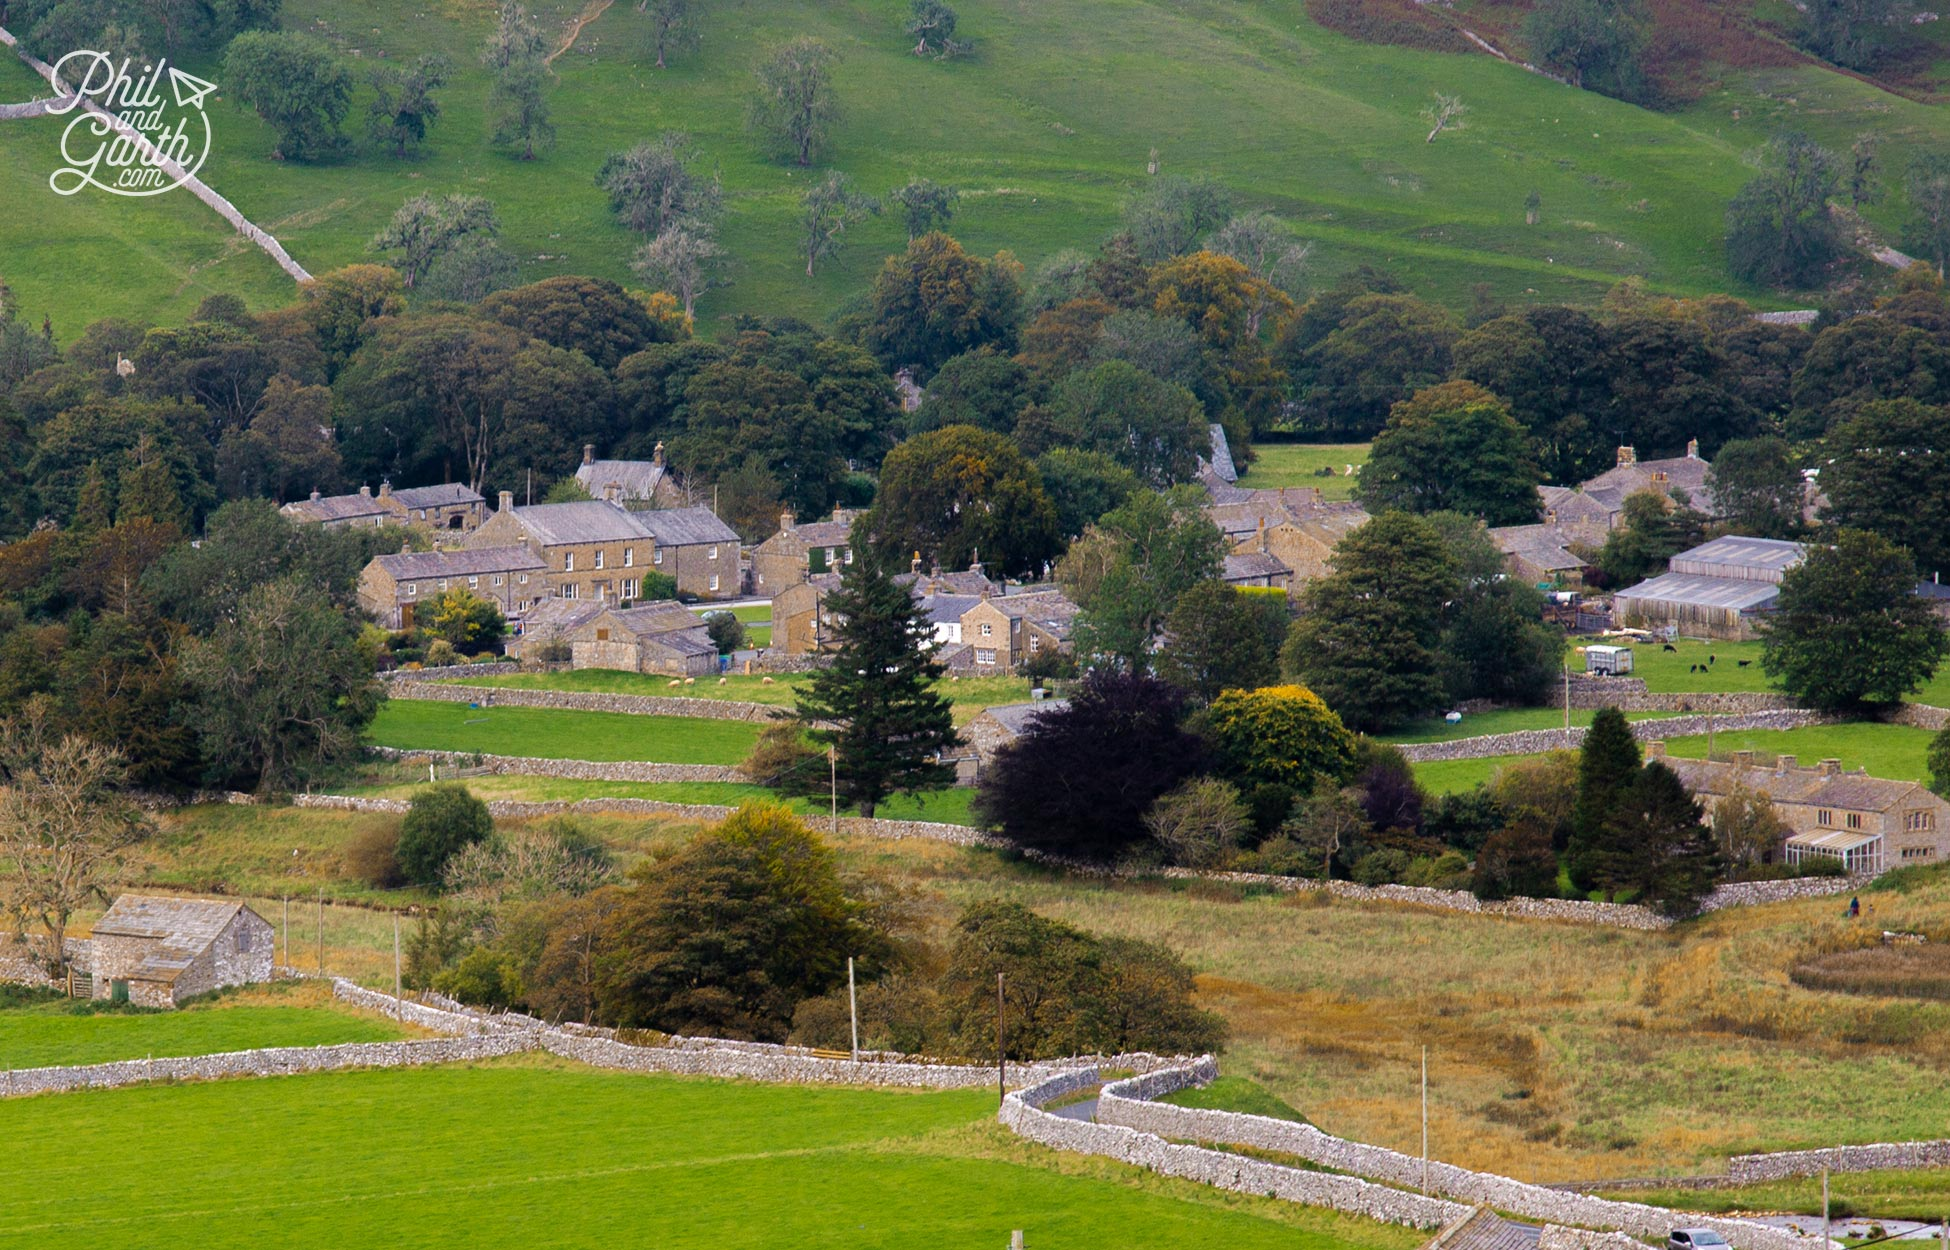 Arncliffe was the original filming location for ITV's Emmerdale Farm tv drama